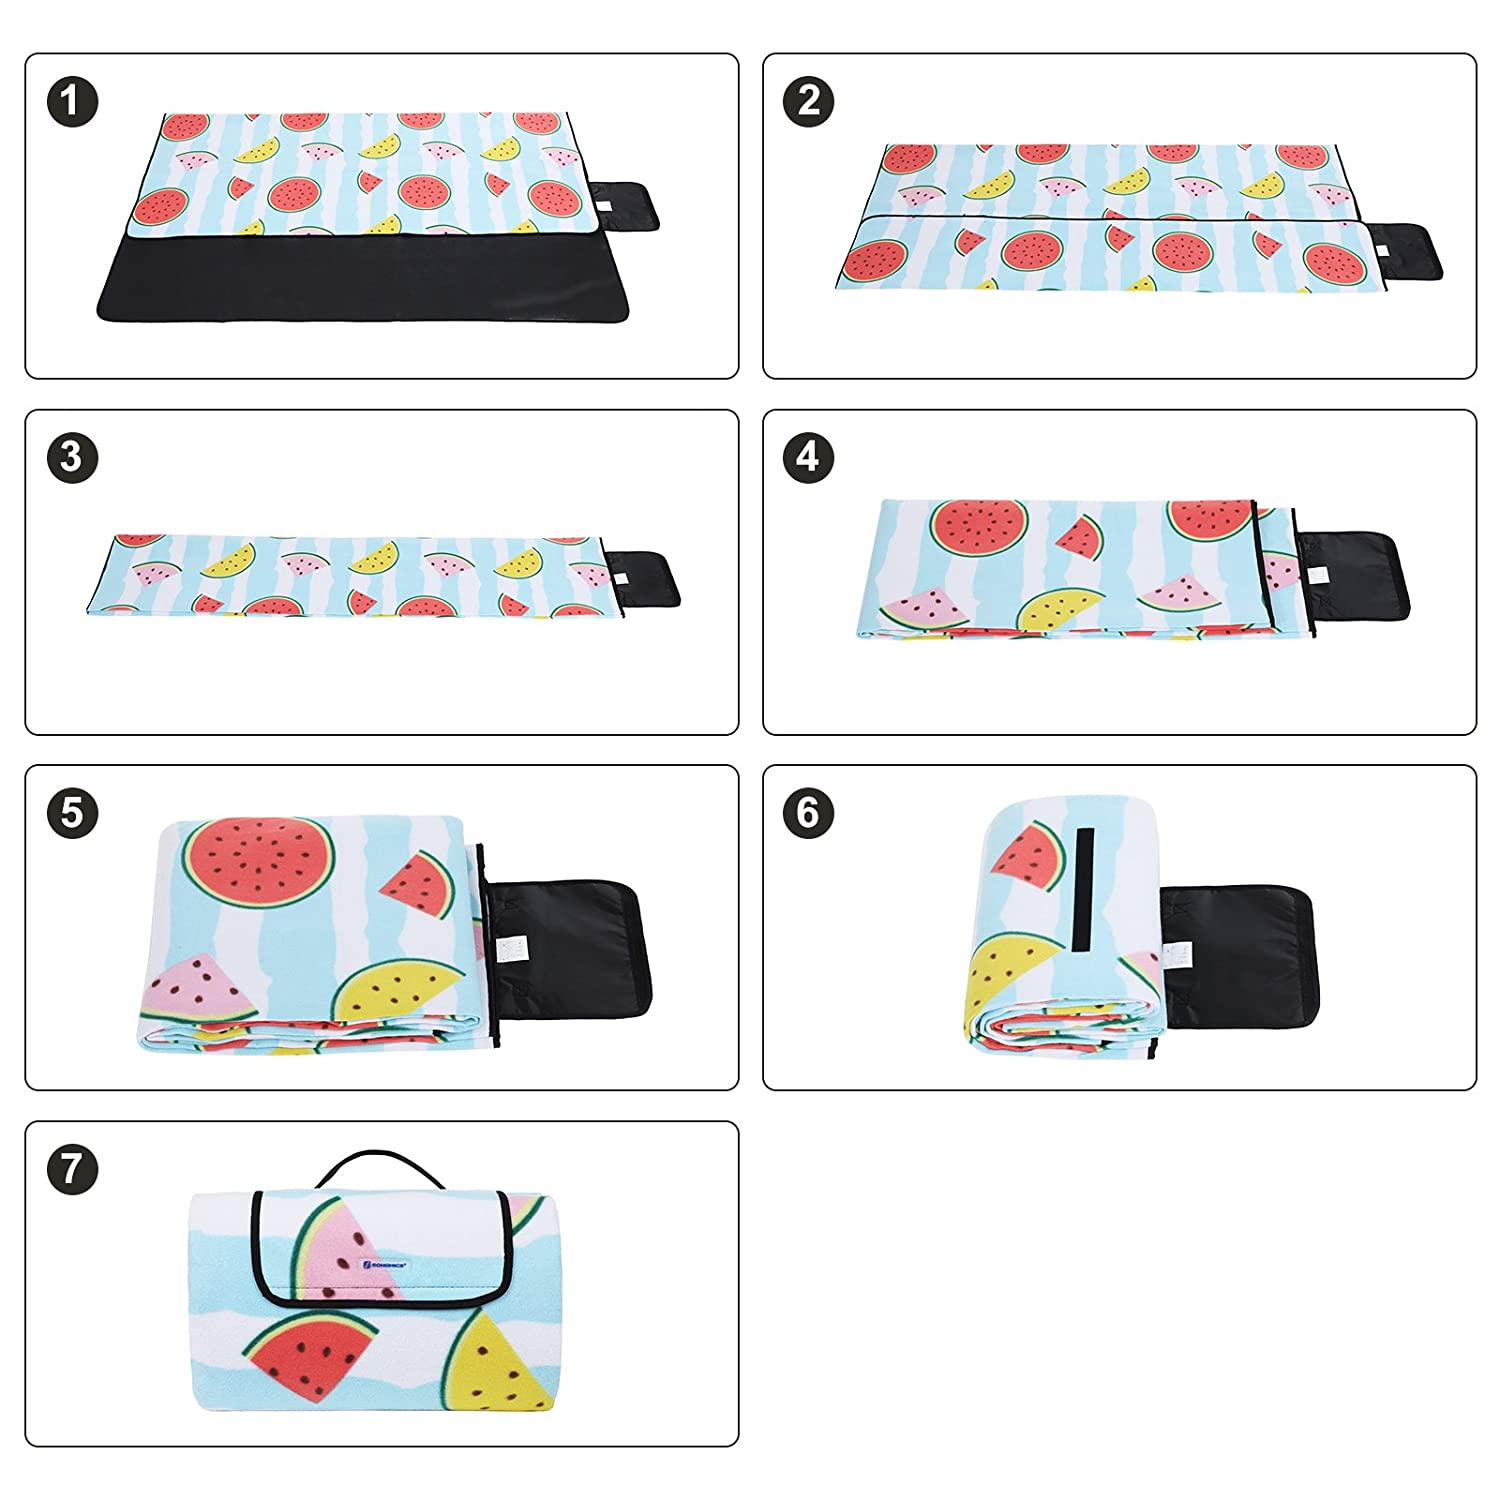 SONGMICS Waterproof Picnic Blanket Extra Large 79 x 79 Outdoor Blanket with Handle UGCM70YR